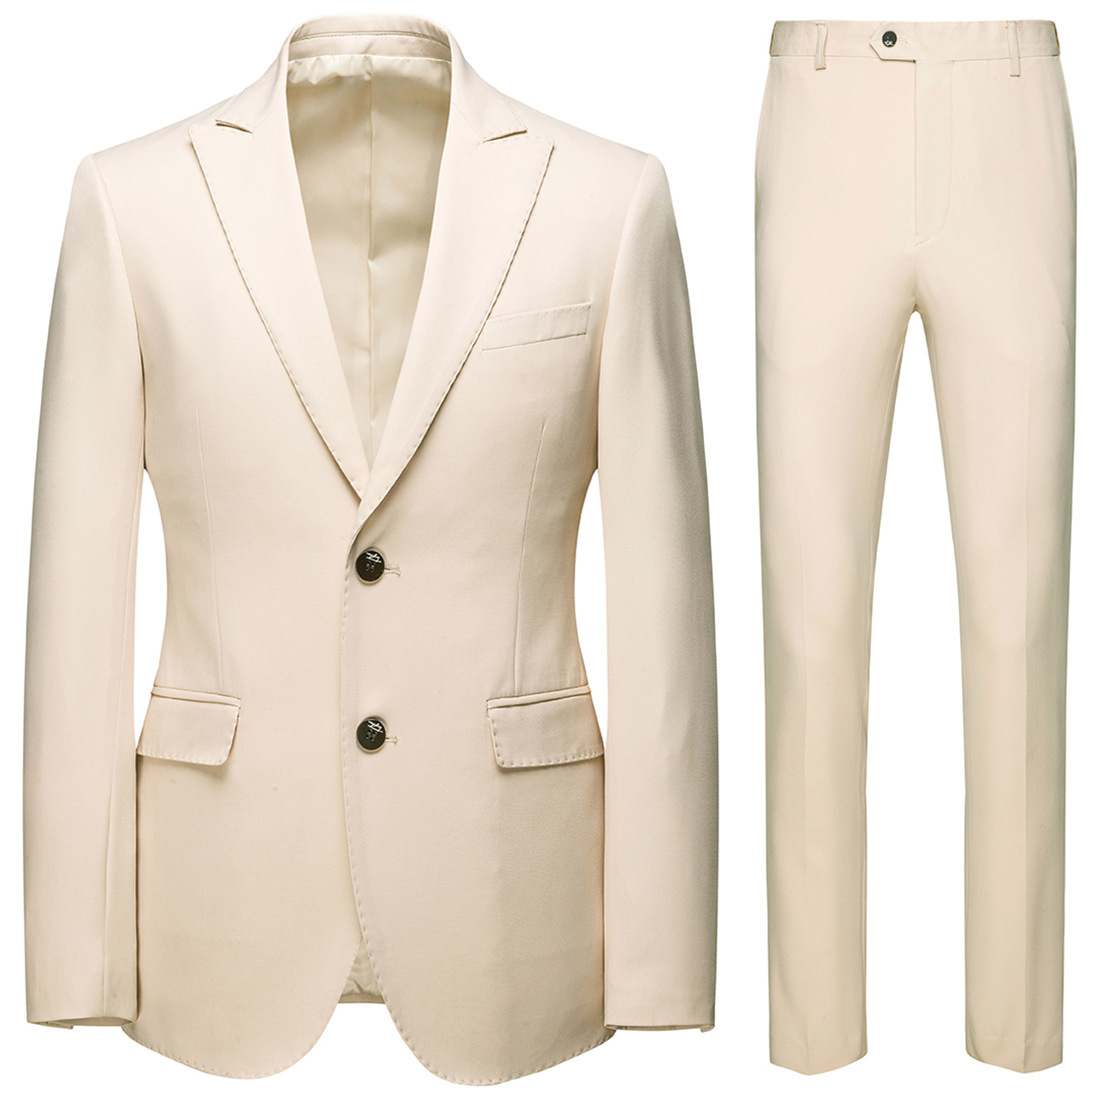 Boutique 2019 New Style Business Leisure Suit 2 Pieces Groom Best Man Wedding Two-Button Suit Set Xf112